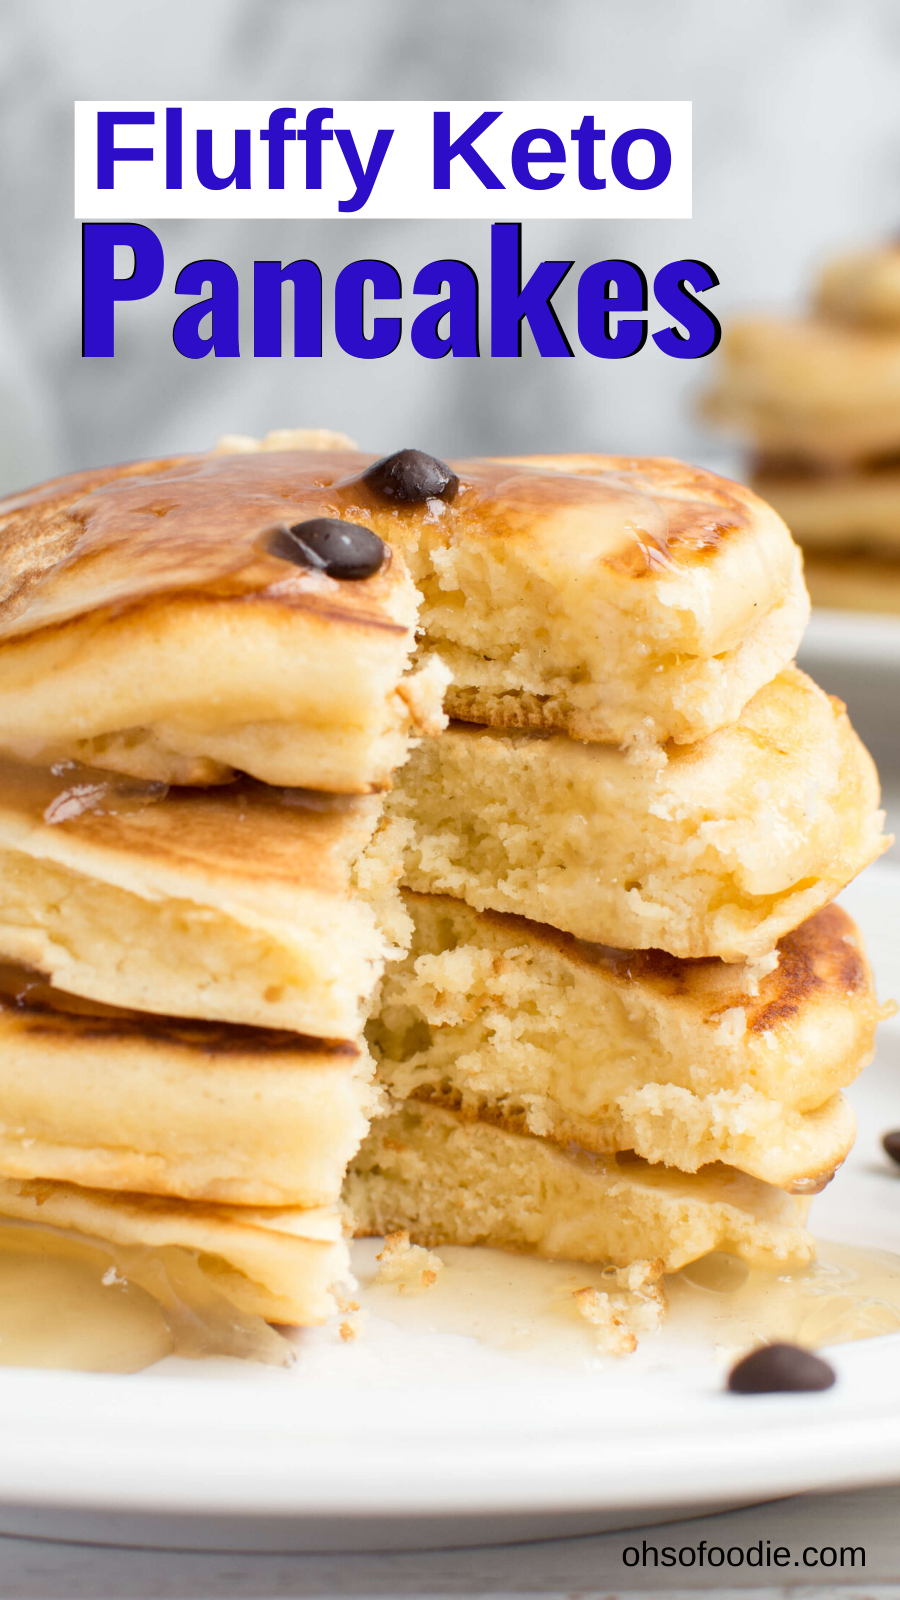 Quick and Easy Fluffy keto pancakes for keto breakfast!